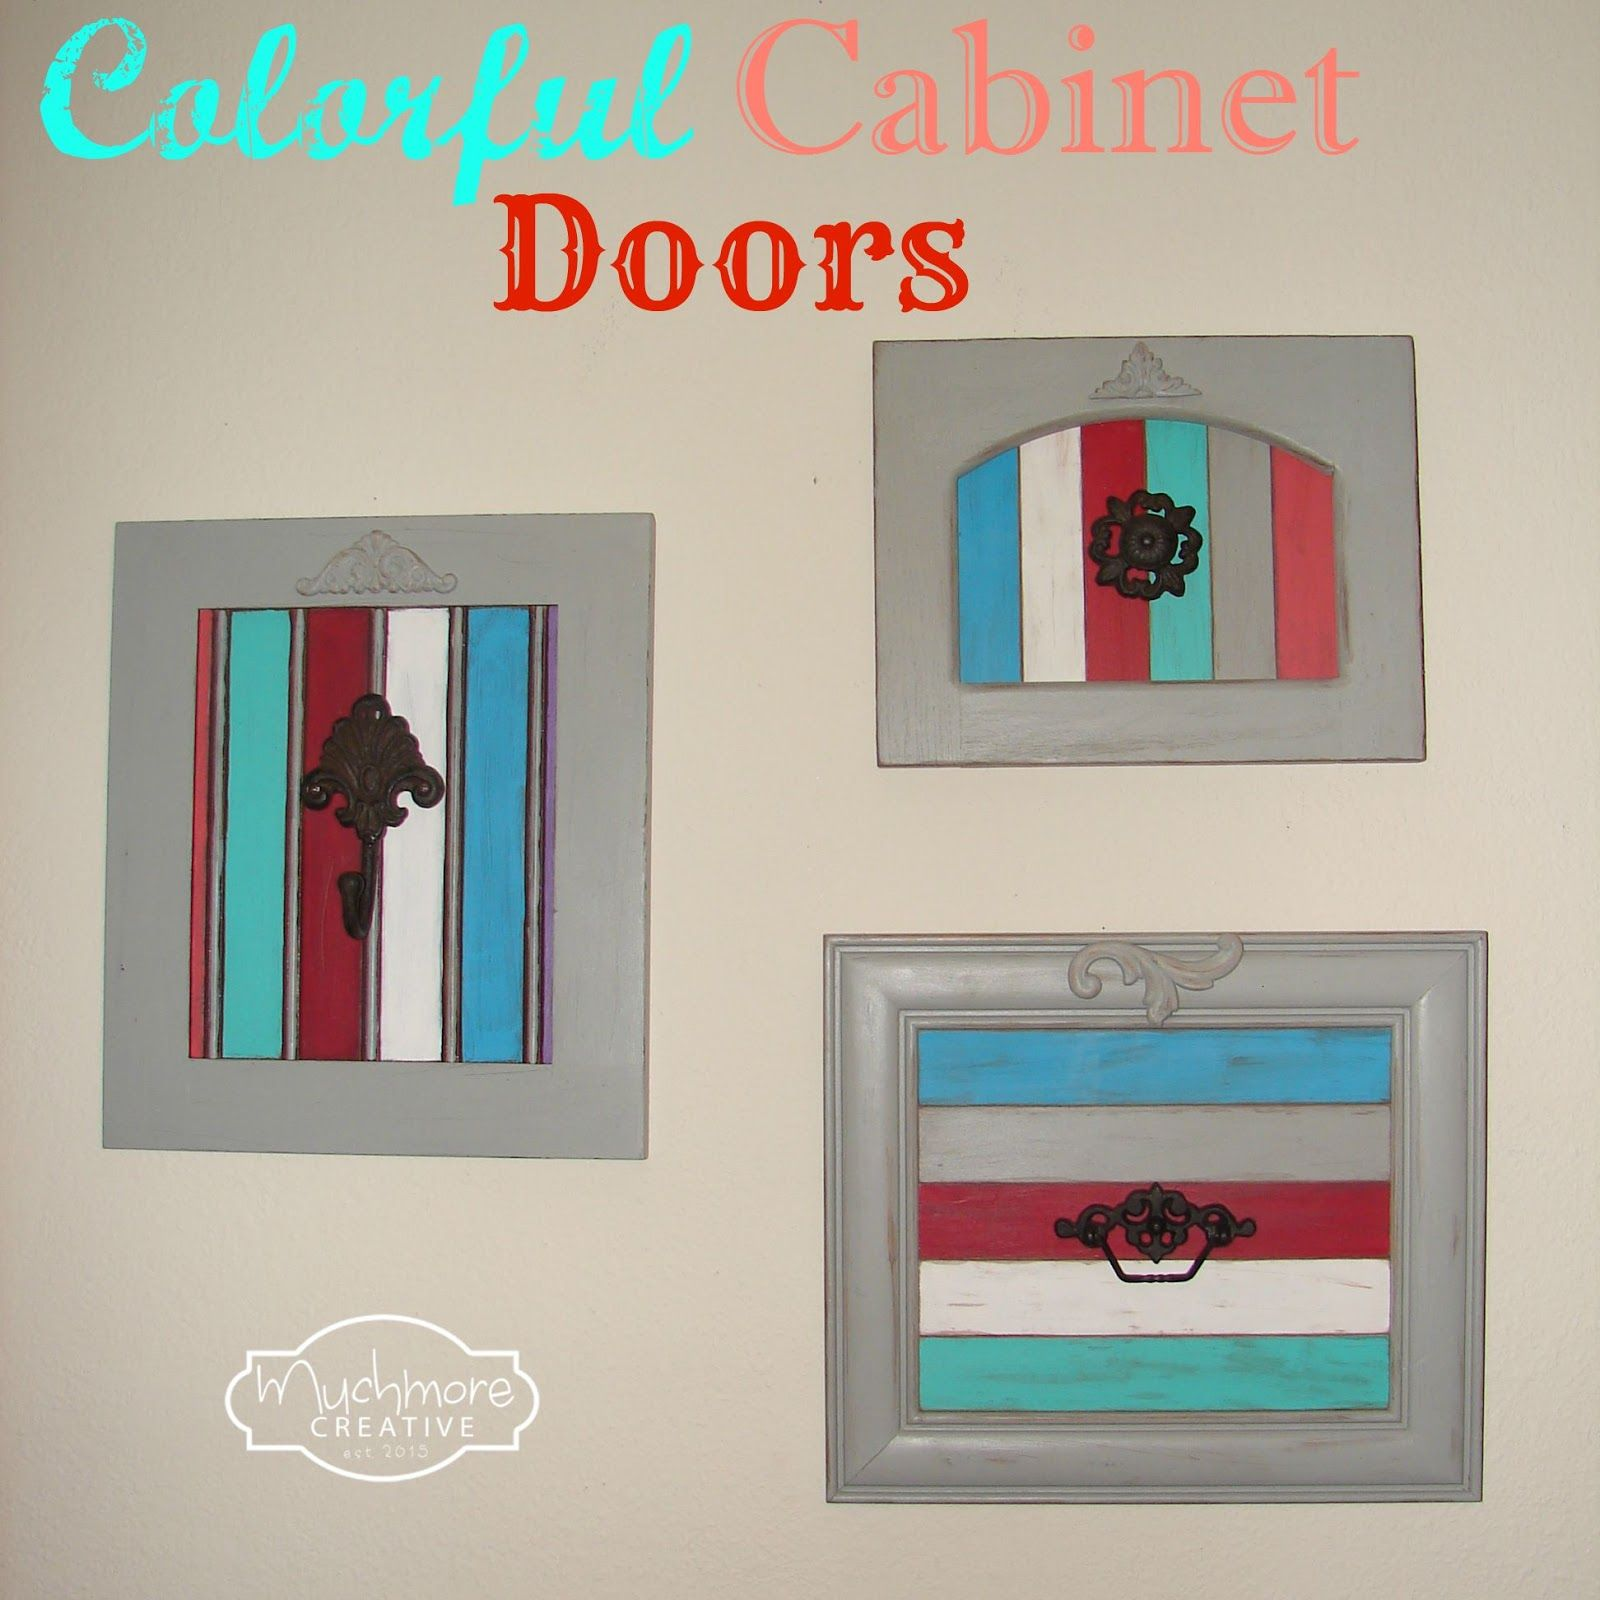 Muchmore creative colorful cabinet doors the pretty pintastic